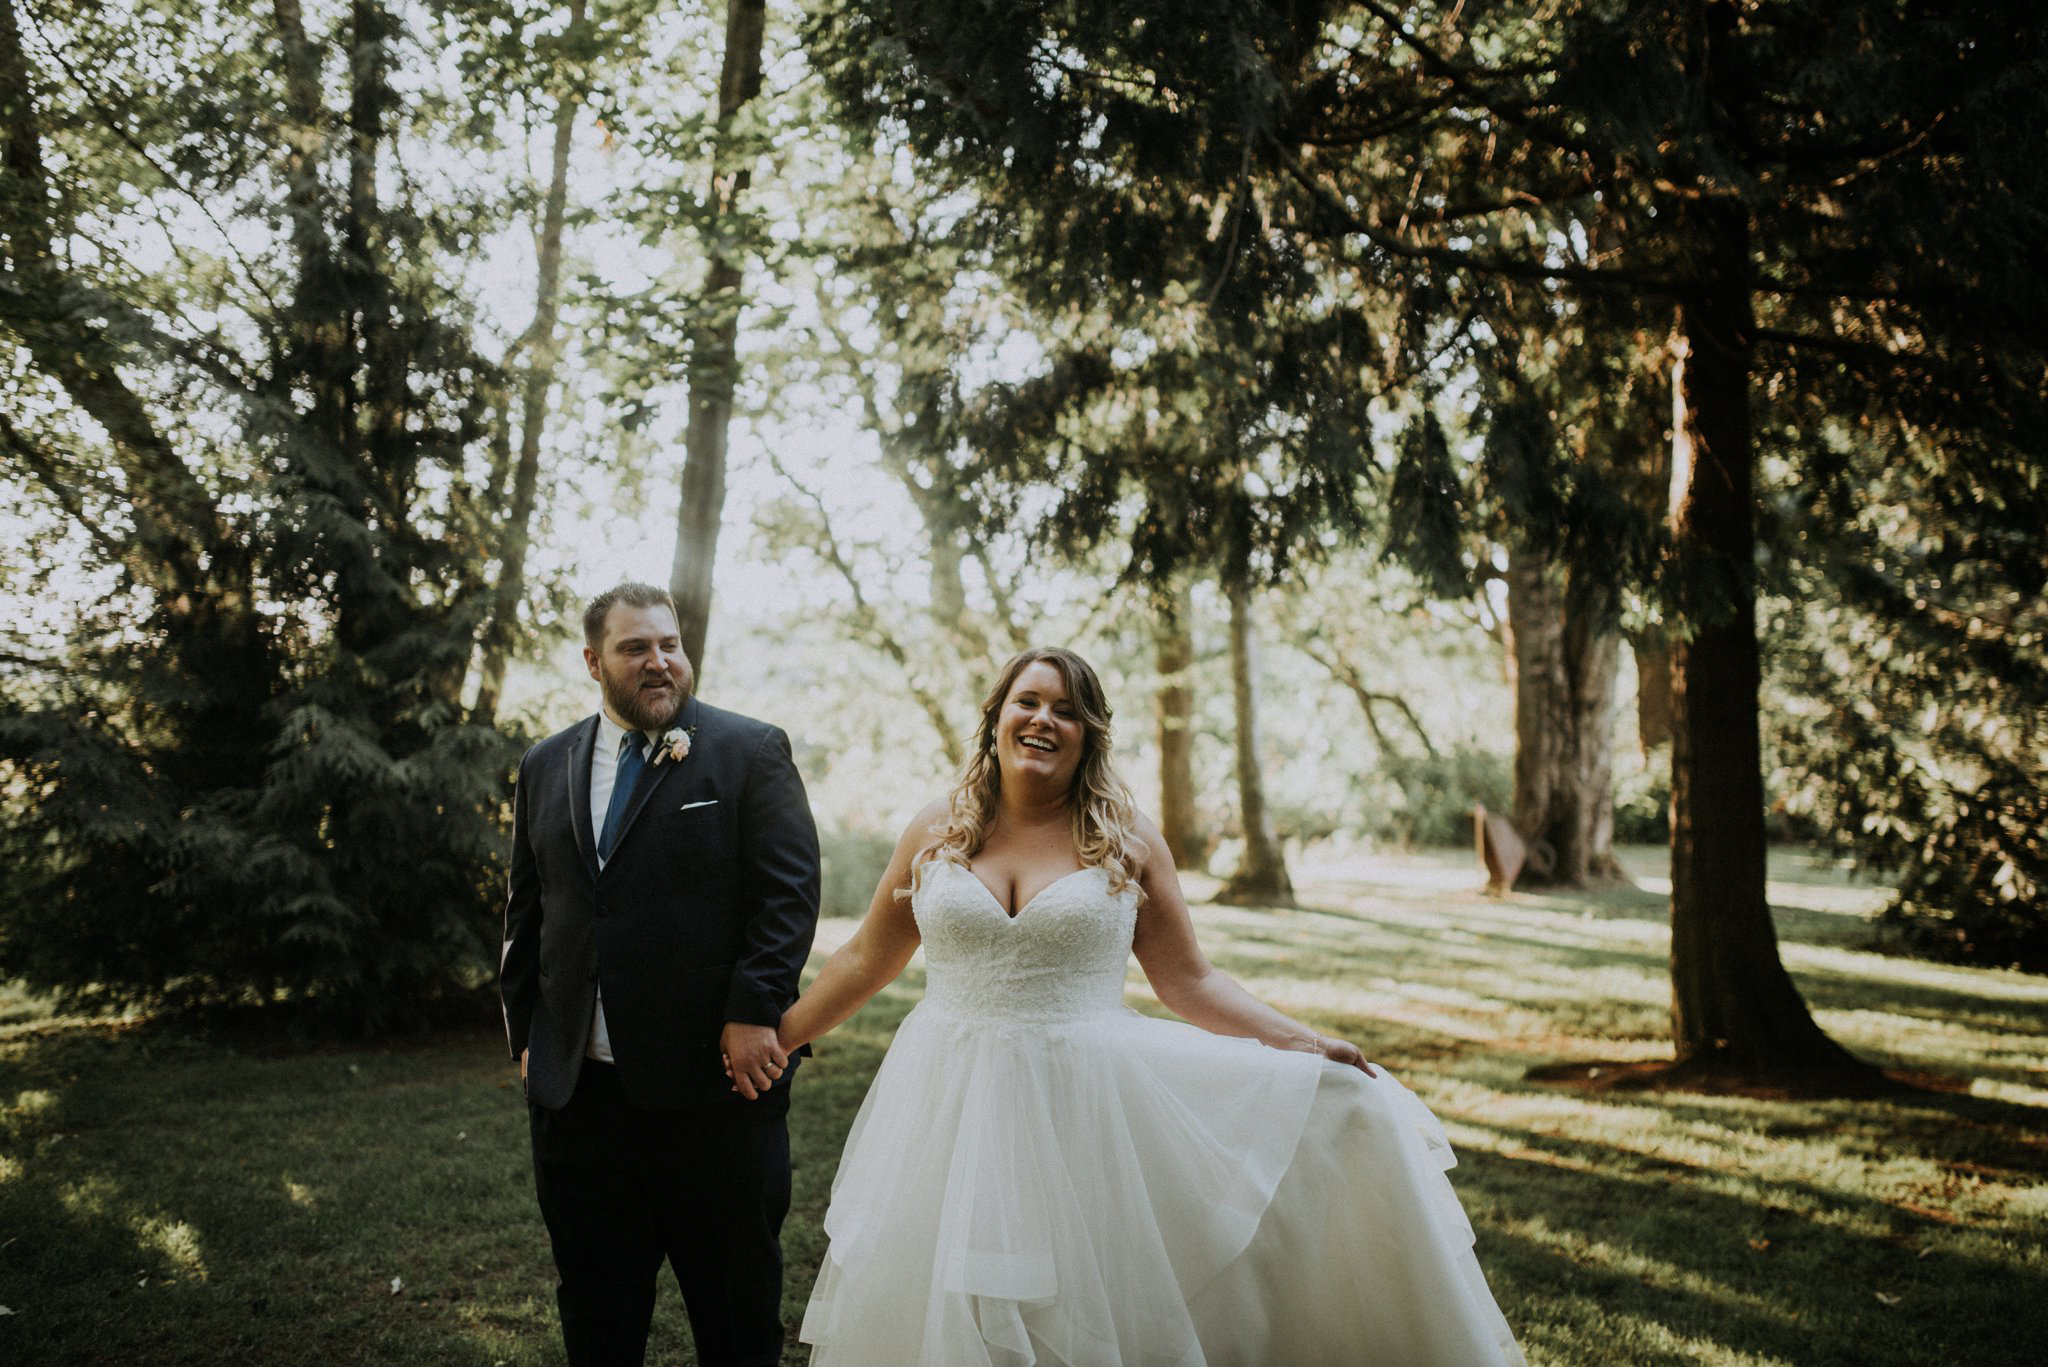 evergreen-gardens-bellingham-wedding-seattle-photographer-caitlyn-nikula-117.jpg